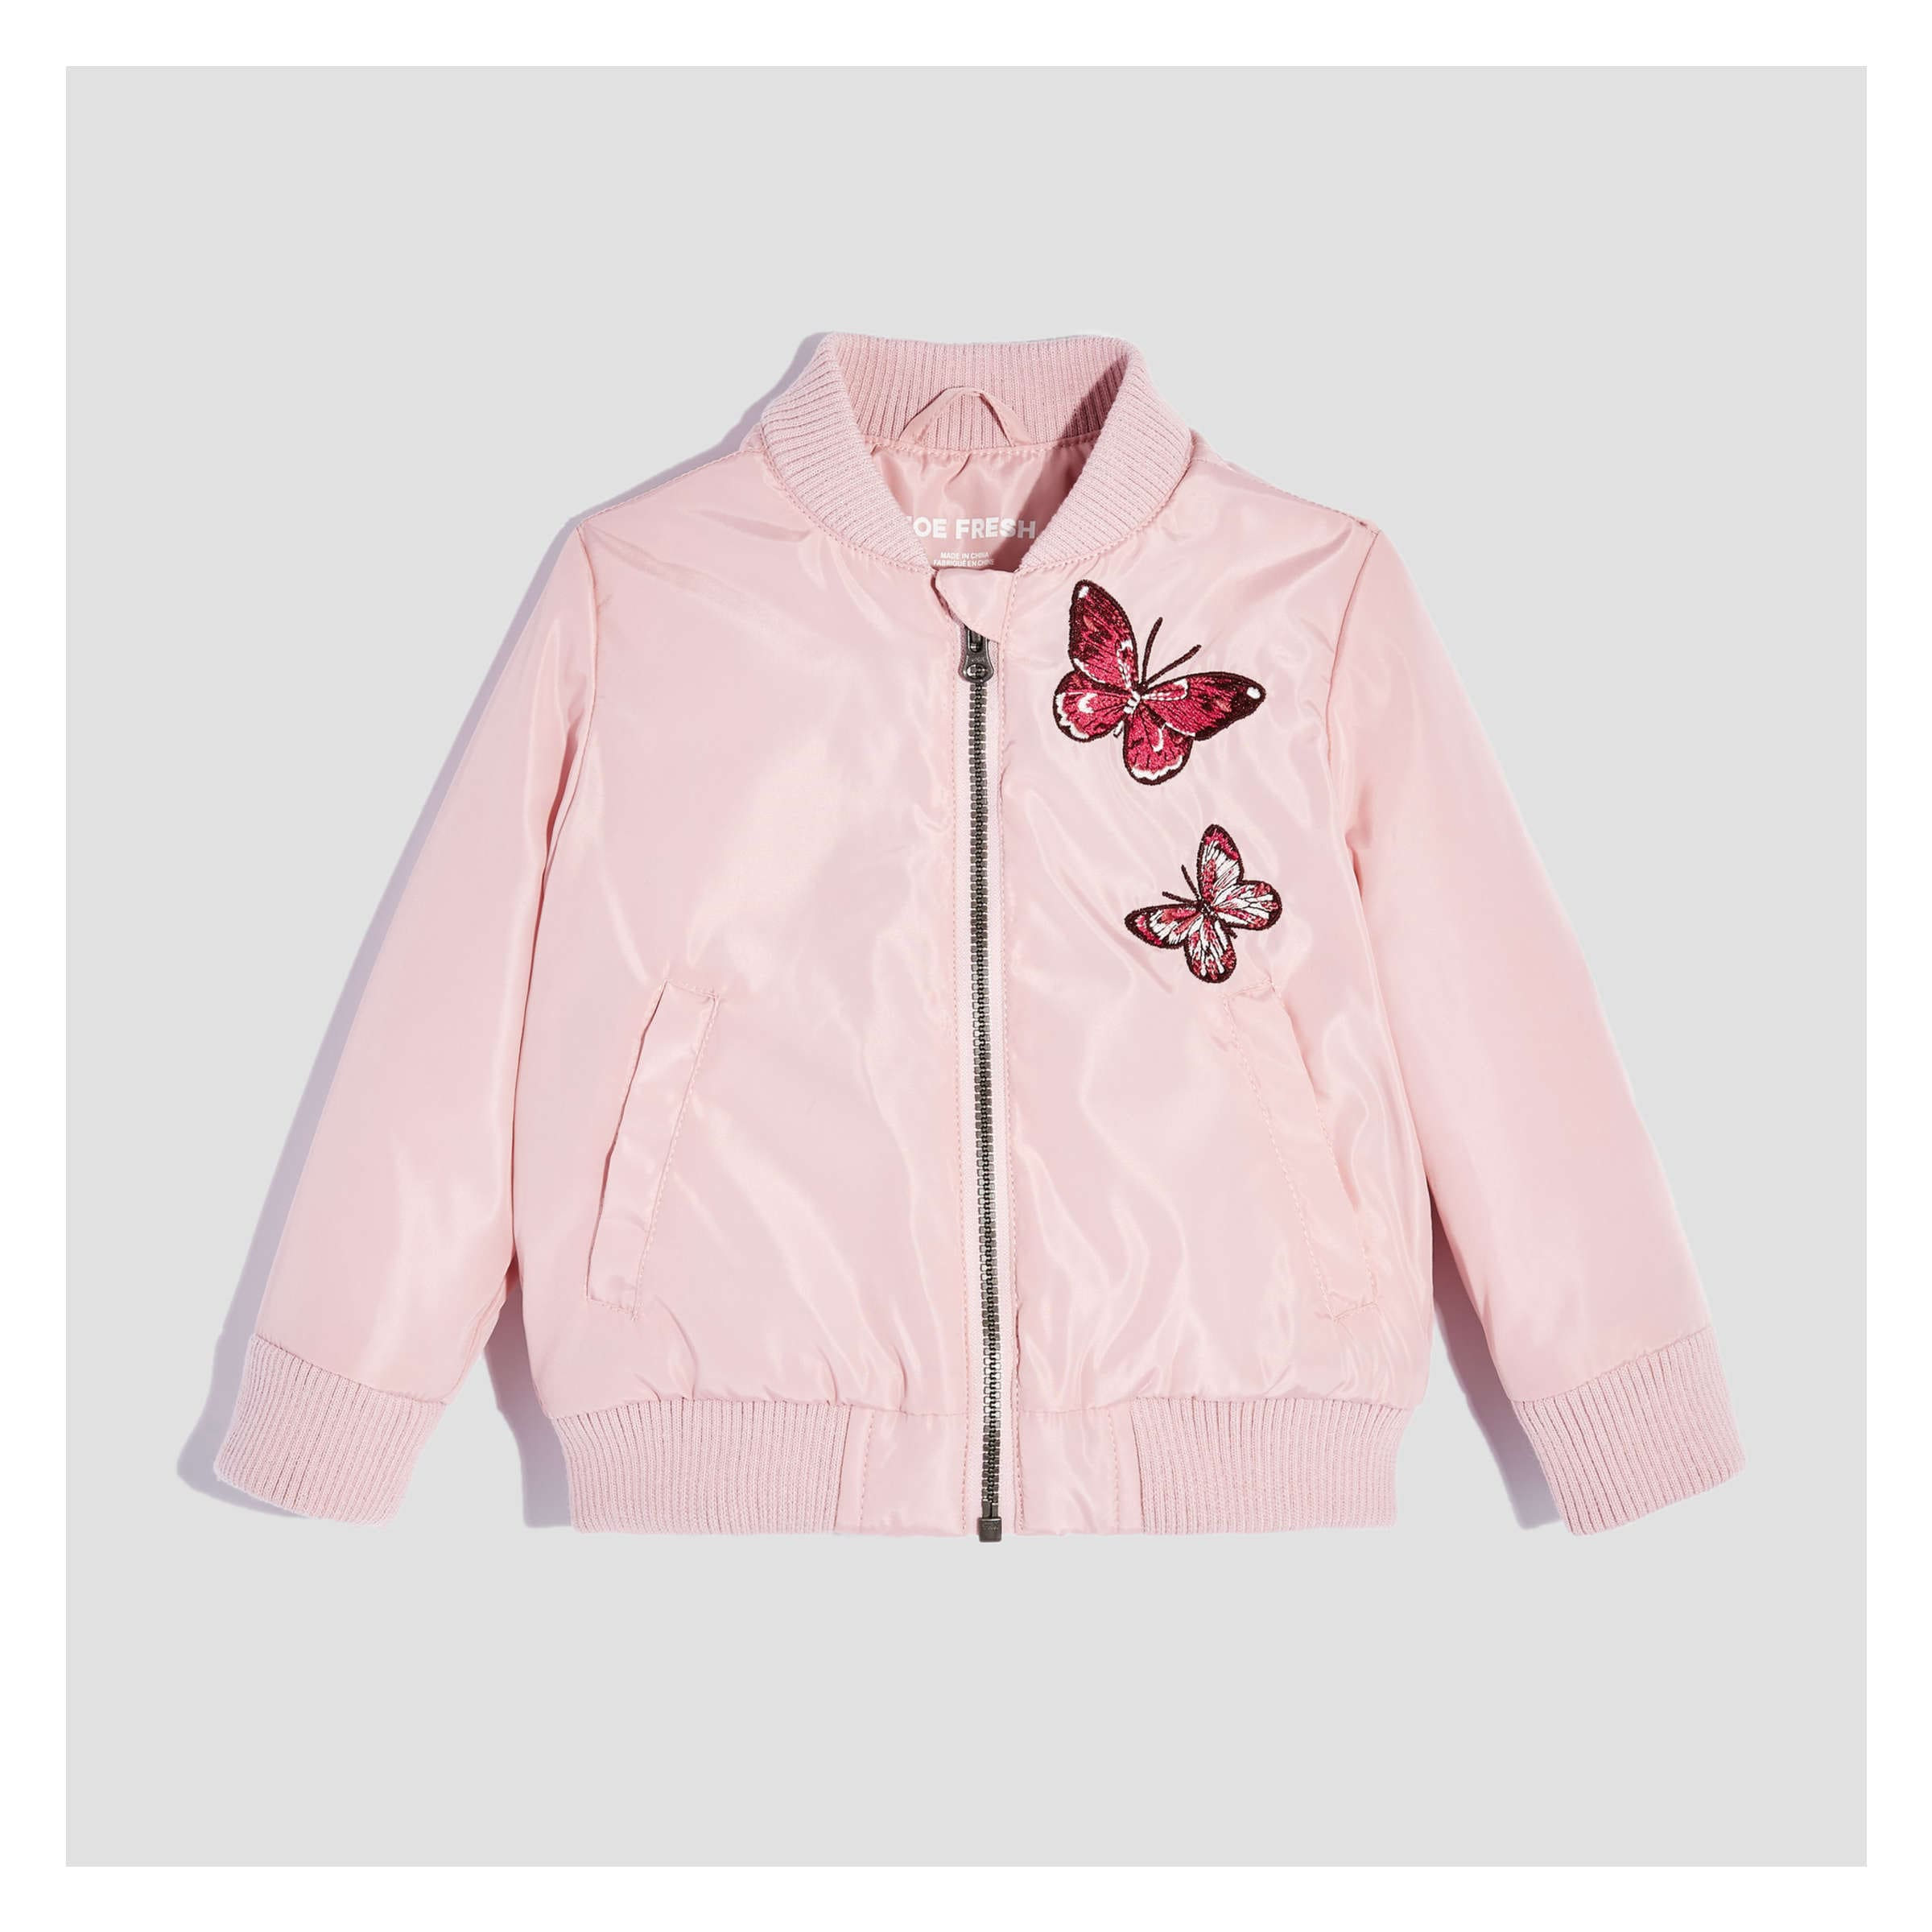 227a8aba9 Baby Girls' Bomber Jacket in JF Perennial Pink from Joe Fresh